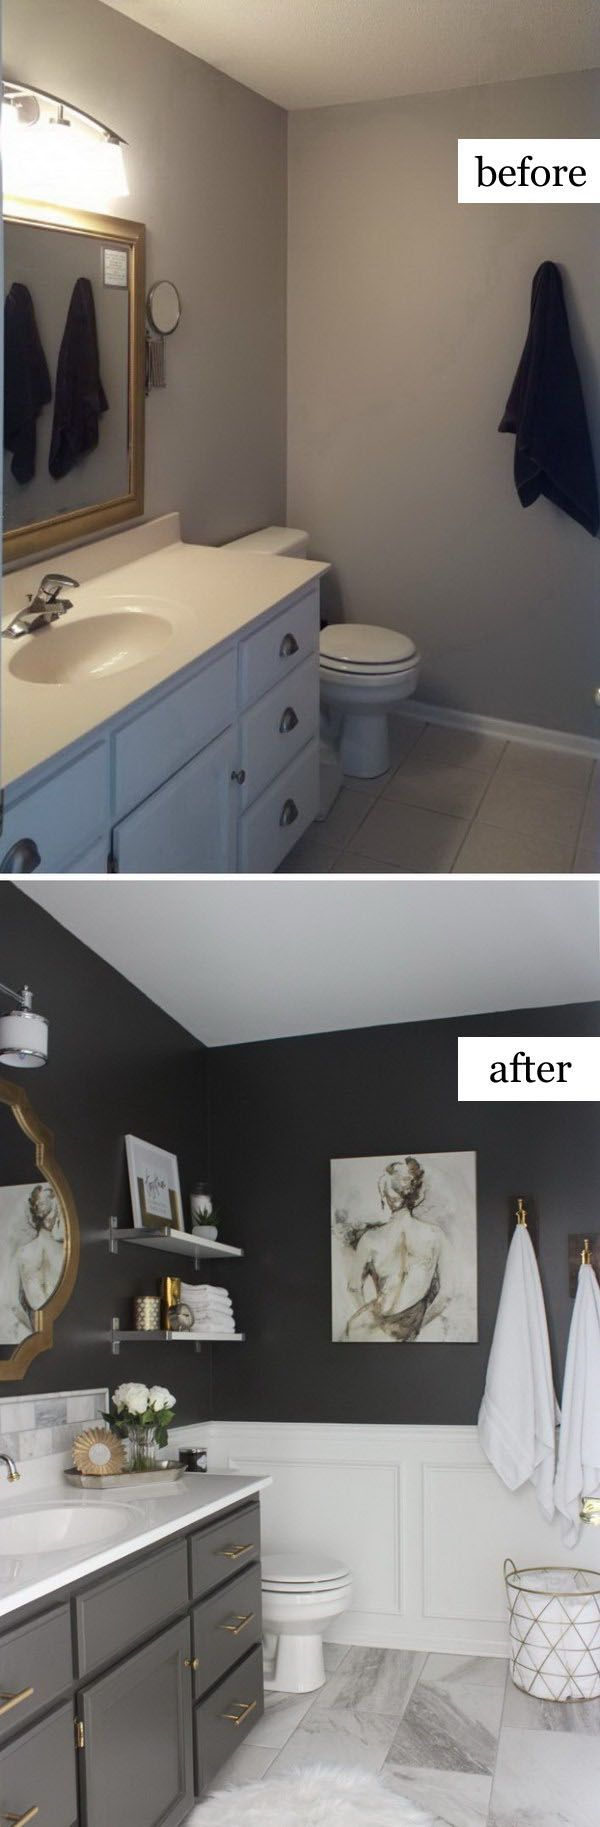 Half Bathroom Remodel Ideas best 20+ small bathroom remodeling ideas on pinterest | half